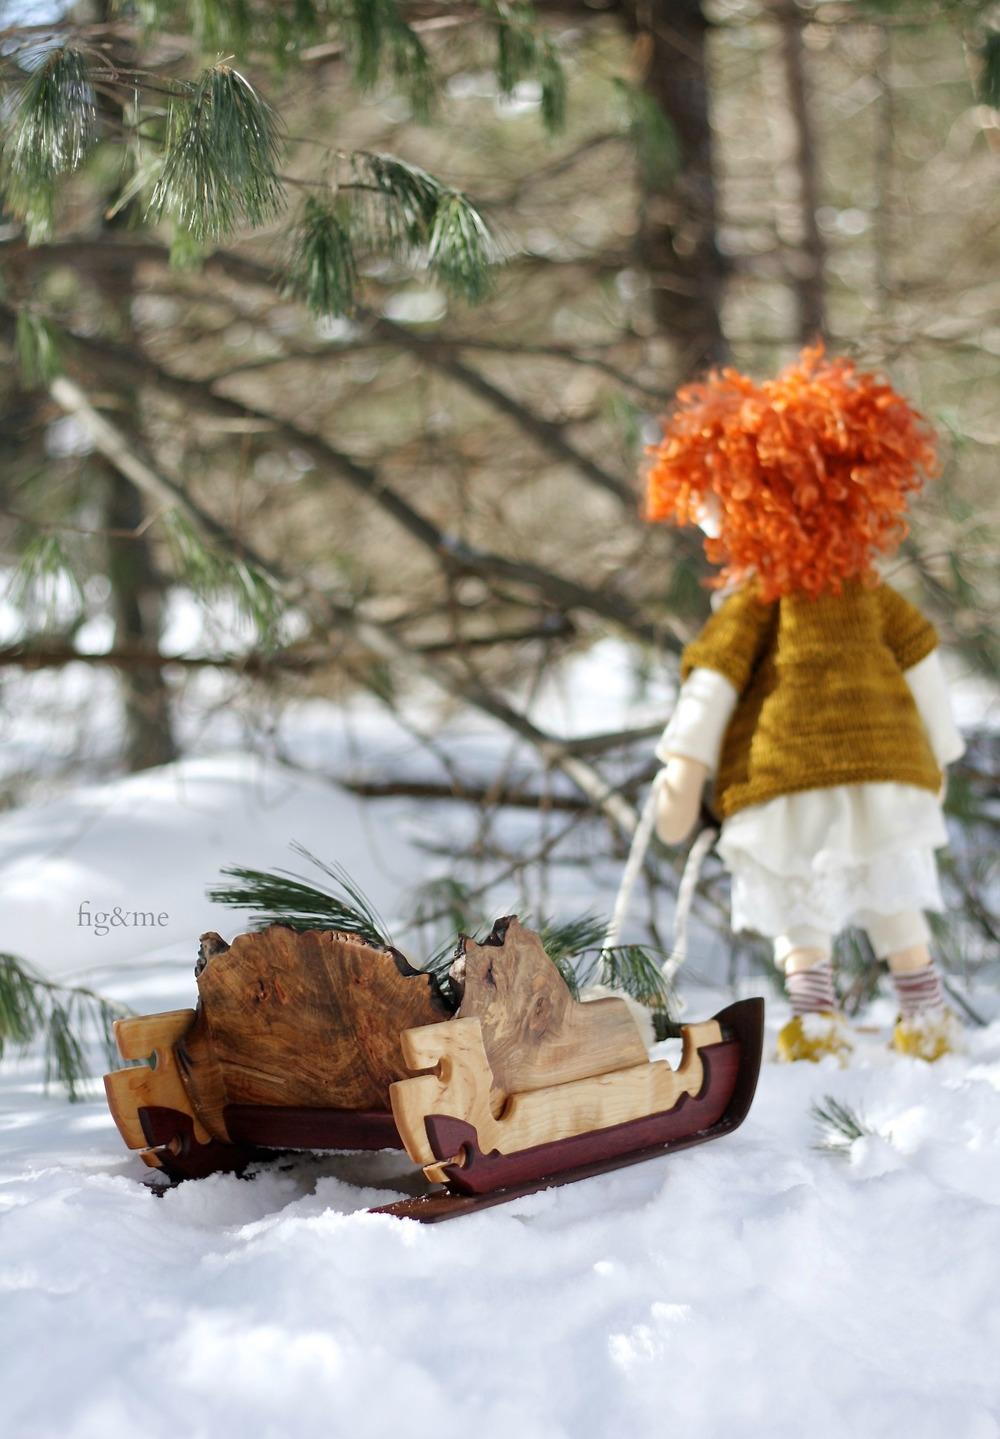 Ewa and her sleigh, by fig and me